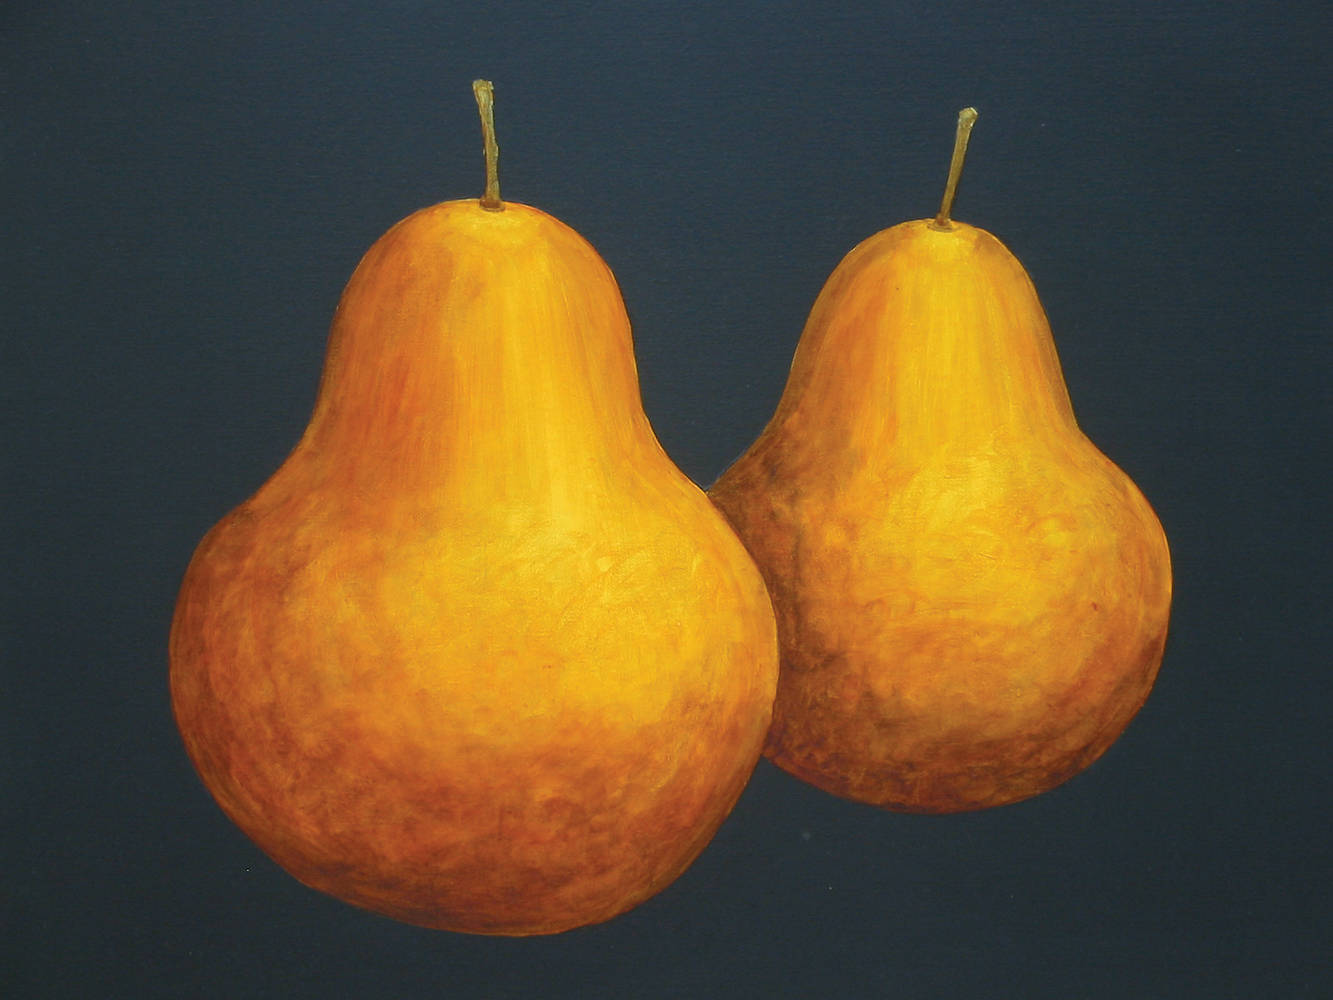 Acrylic painting 2 Big Pears by Allyson Malek